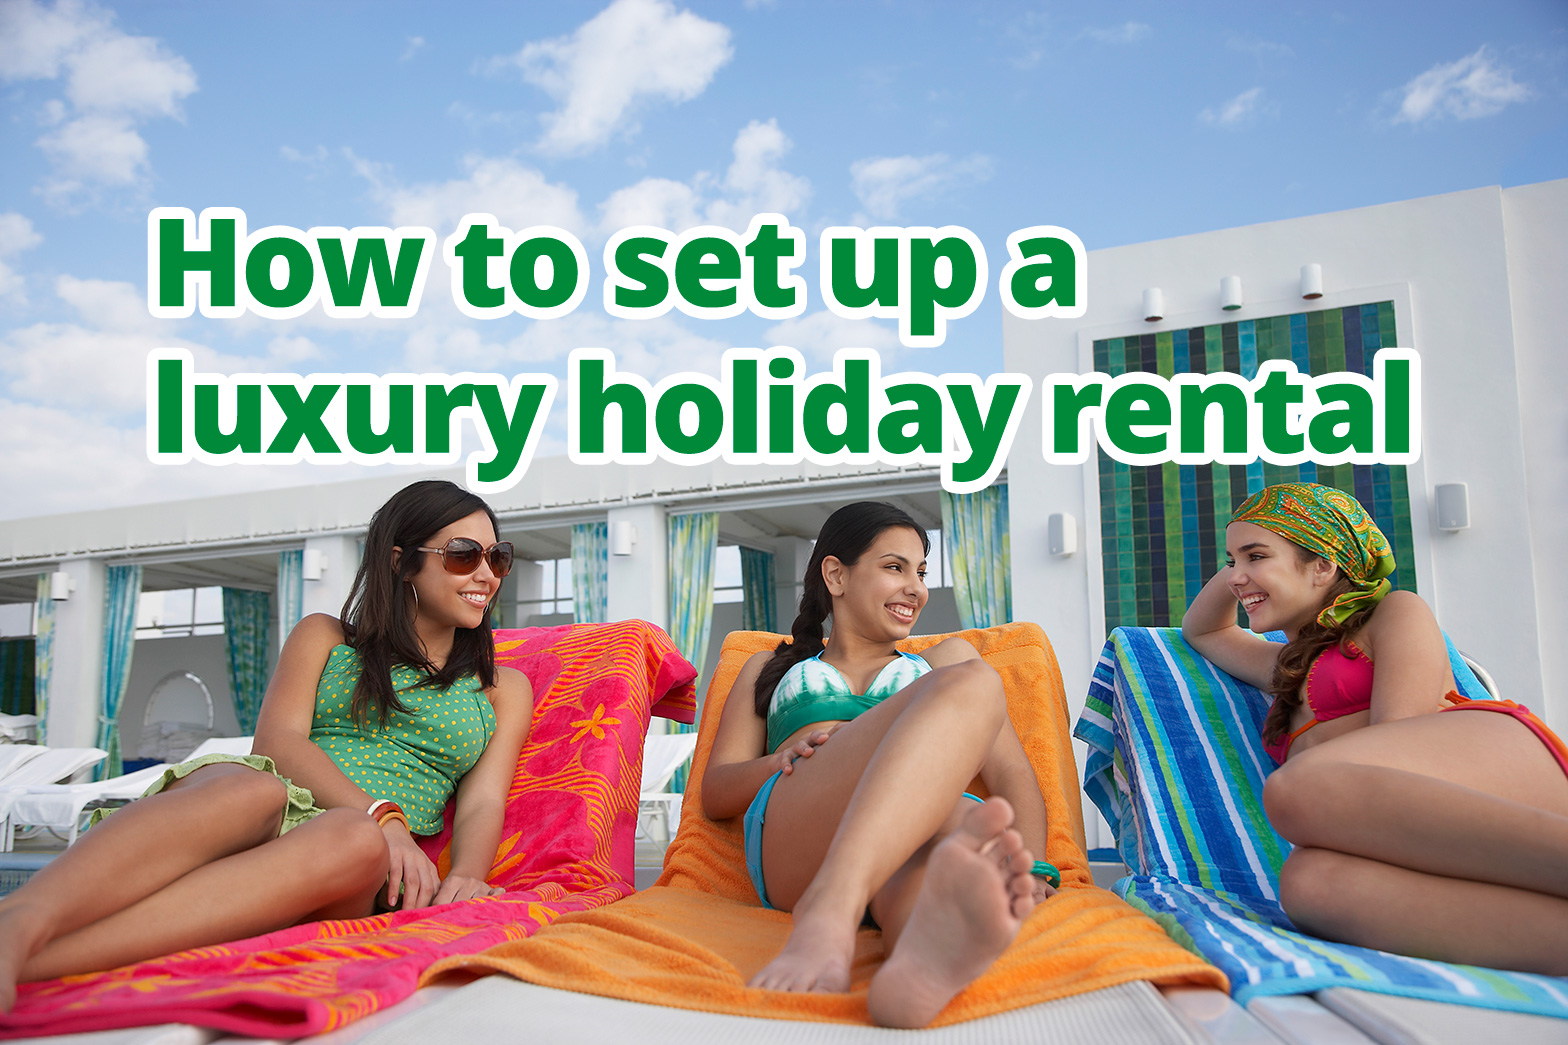 How to set up a luxury holiday rental